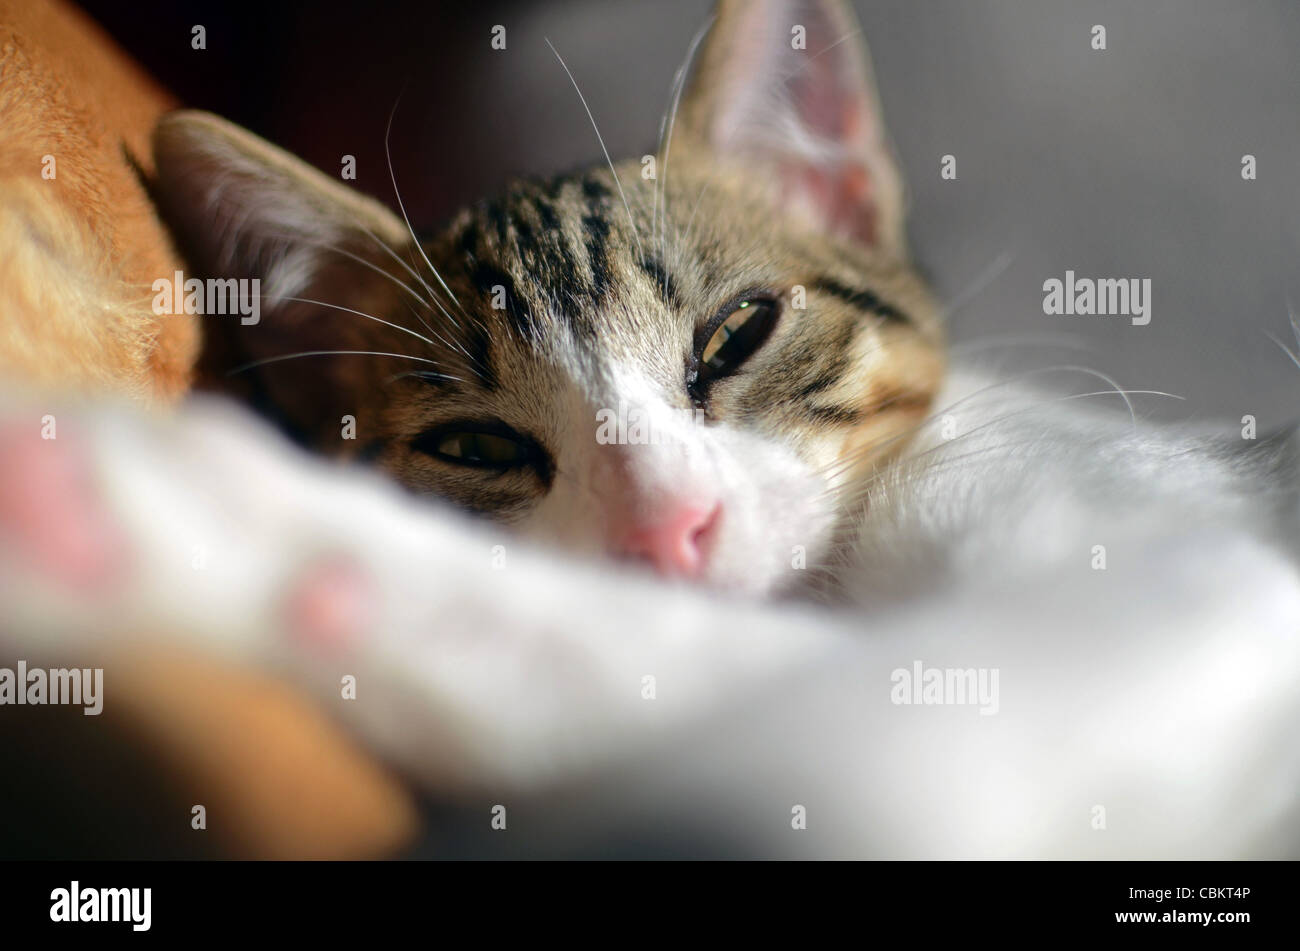 Cute kitten at home - Stock Image